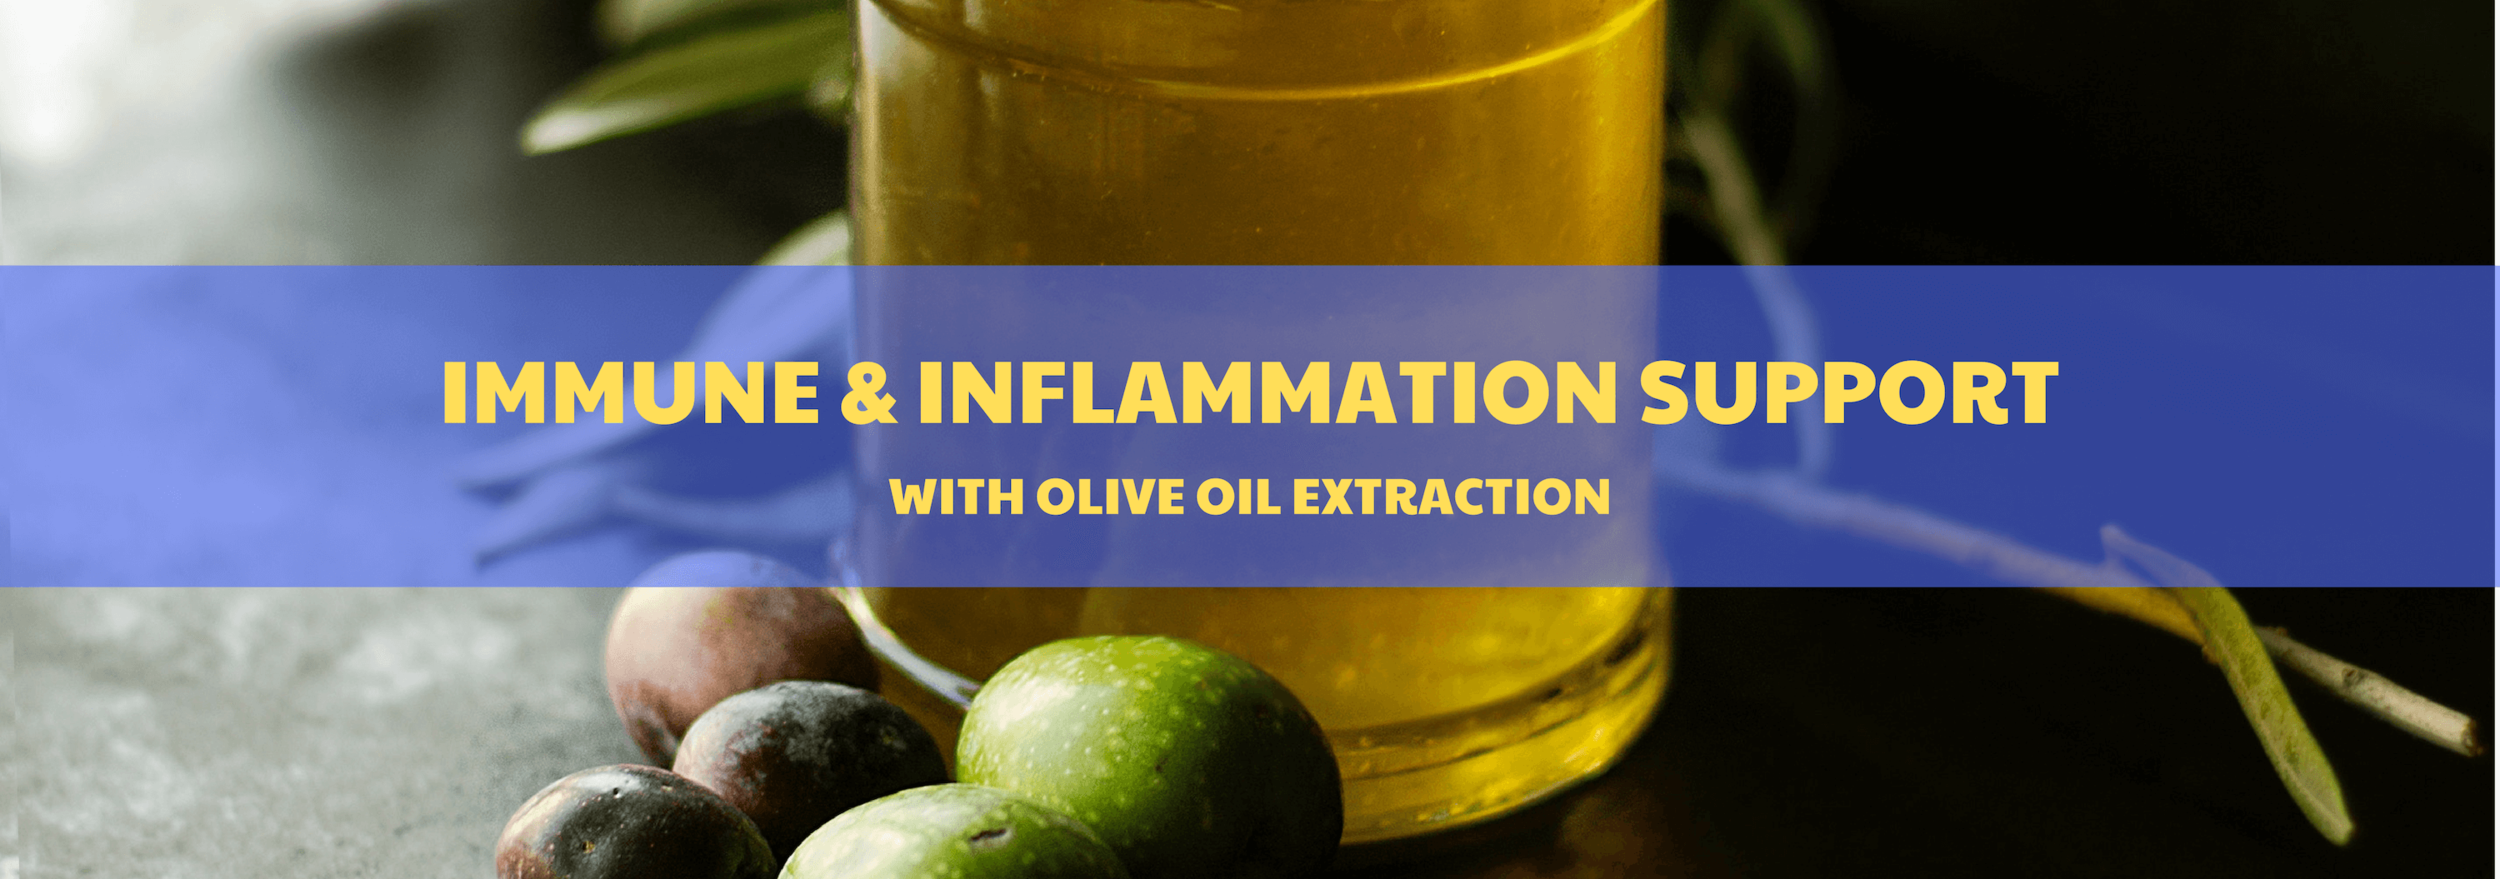 11 Best Hemp Oil Benefits and Uses (2019) — IAR NUTRITION